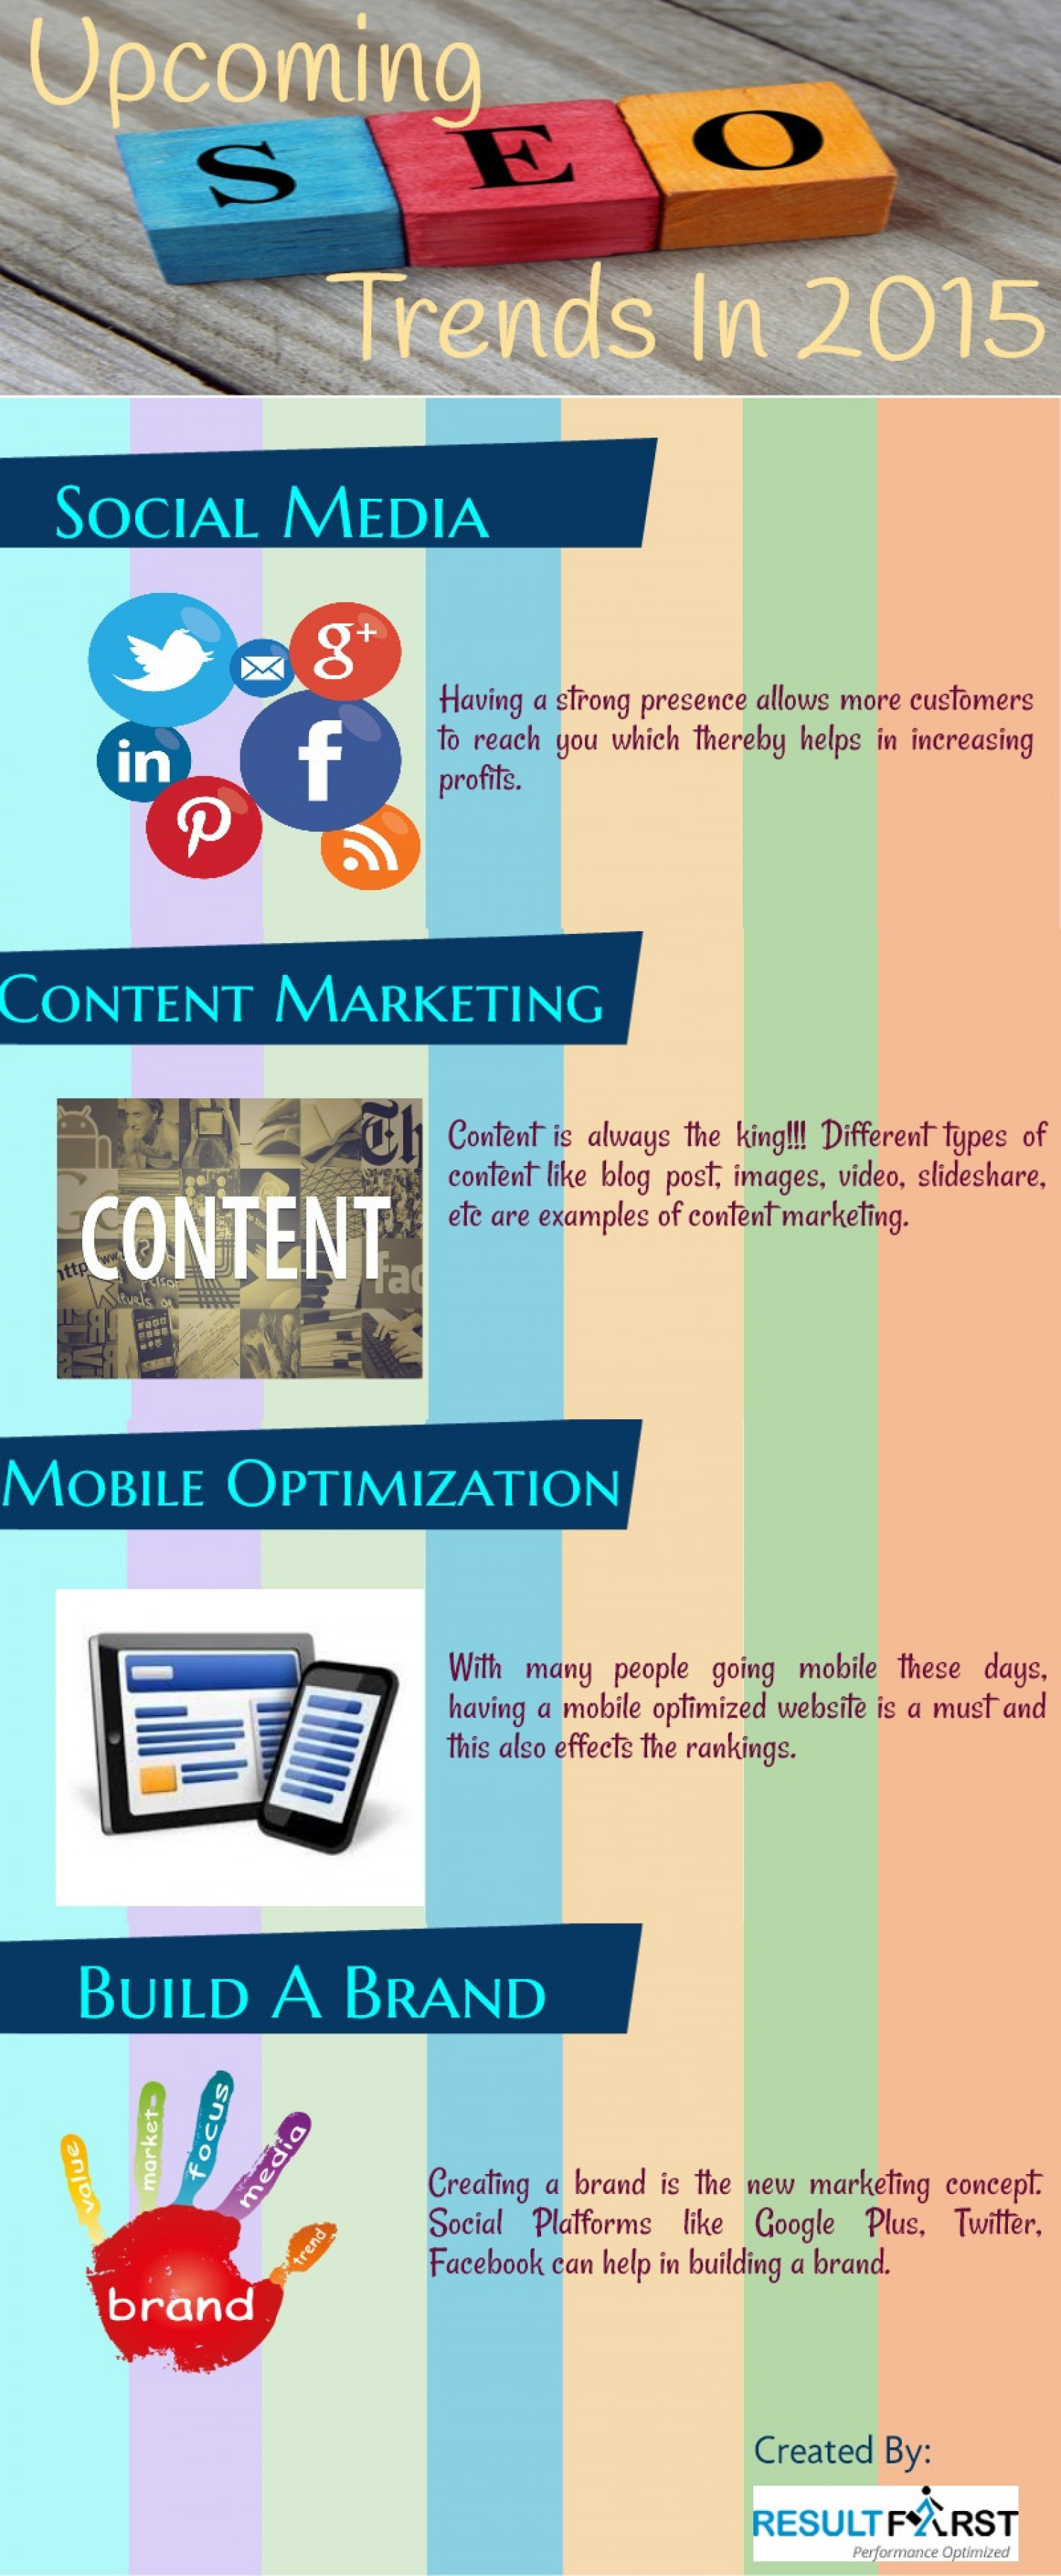 Upcoming SEO Trends in 2015 Infographic